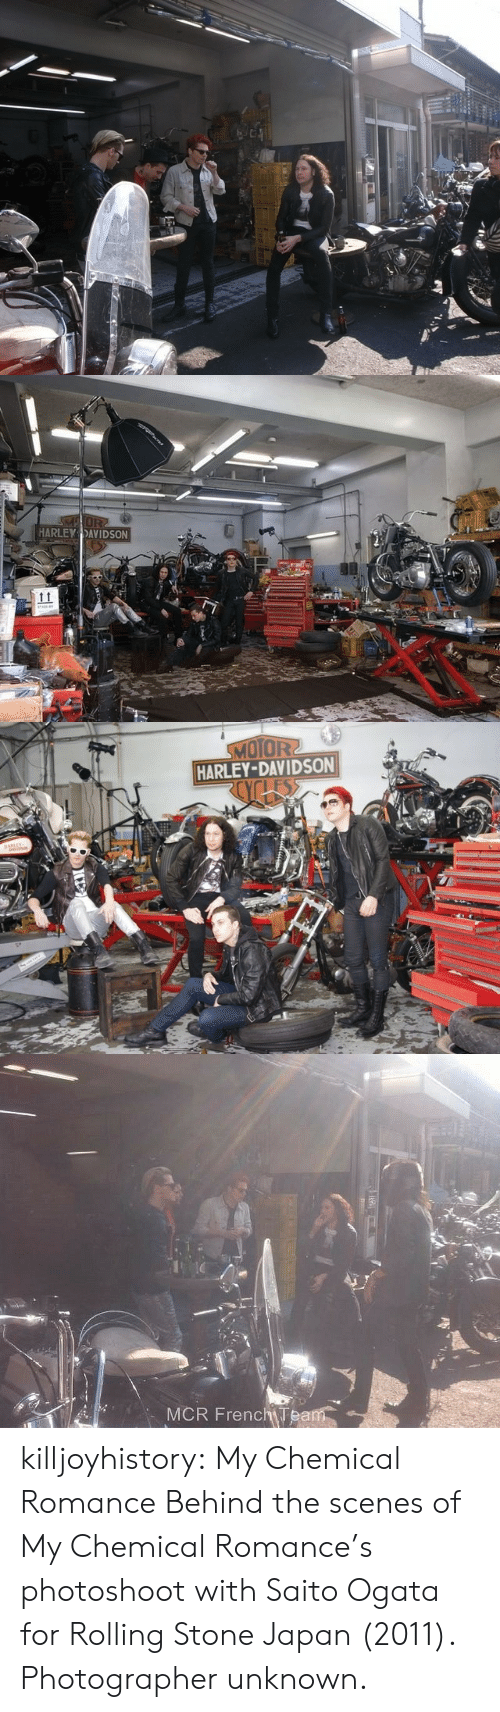 scenes: MOR  HARLEY DAVIDSON   MOTOR2  HARLEY-DAVIDSON  os   MCR FrenchTeam killjoyhistory:  My Chemical Romance Behind the scenes of My Chemical Romance's photoshoot with Saito Ogata for Rolling Stone Japan (2011). Photographer unknown.